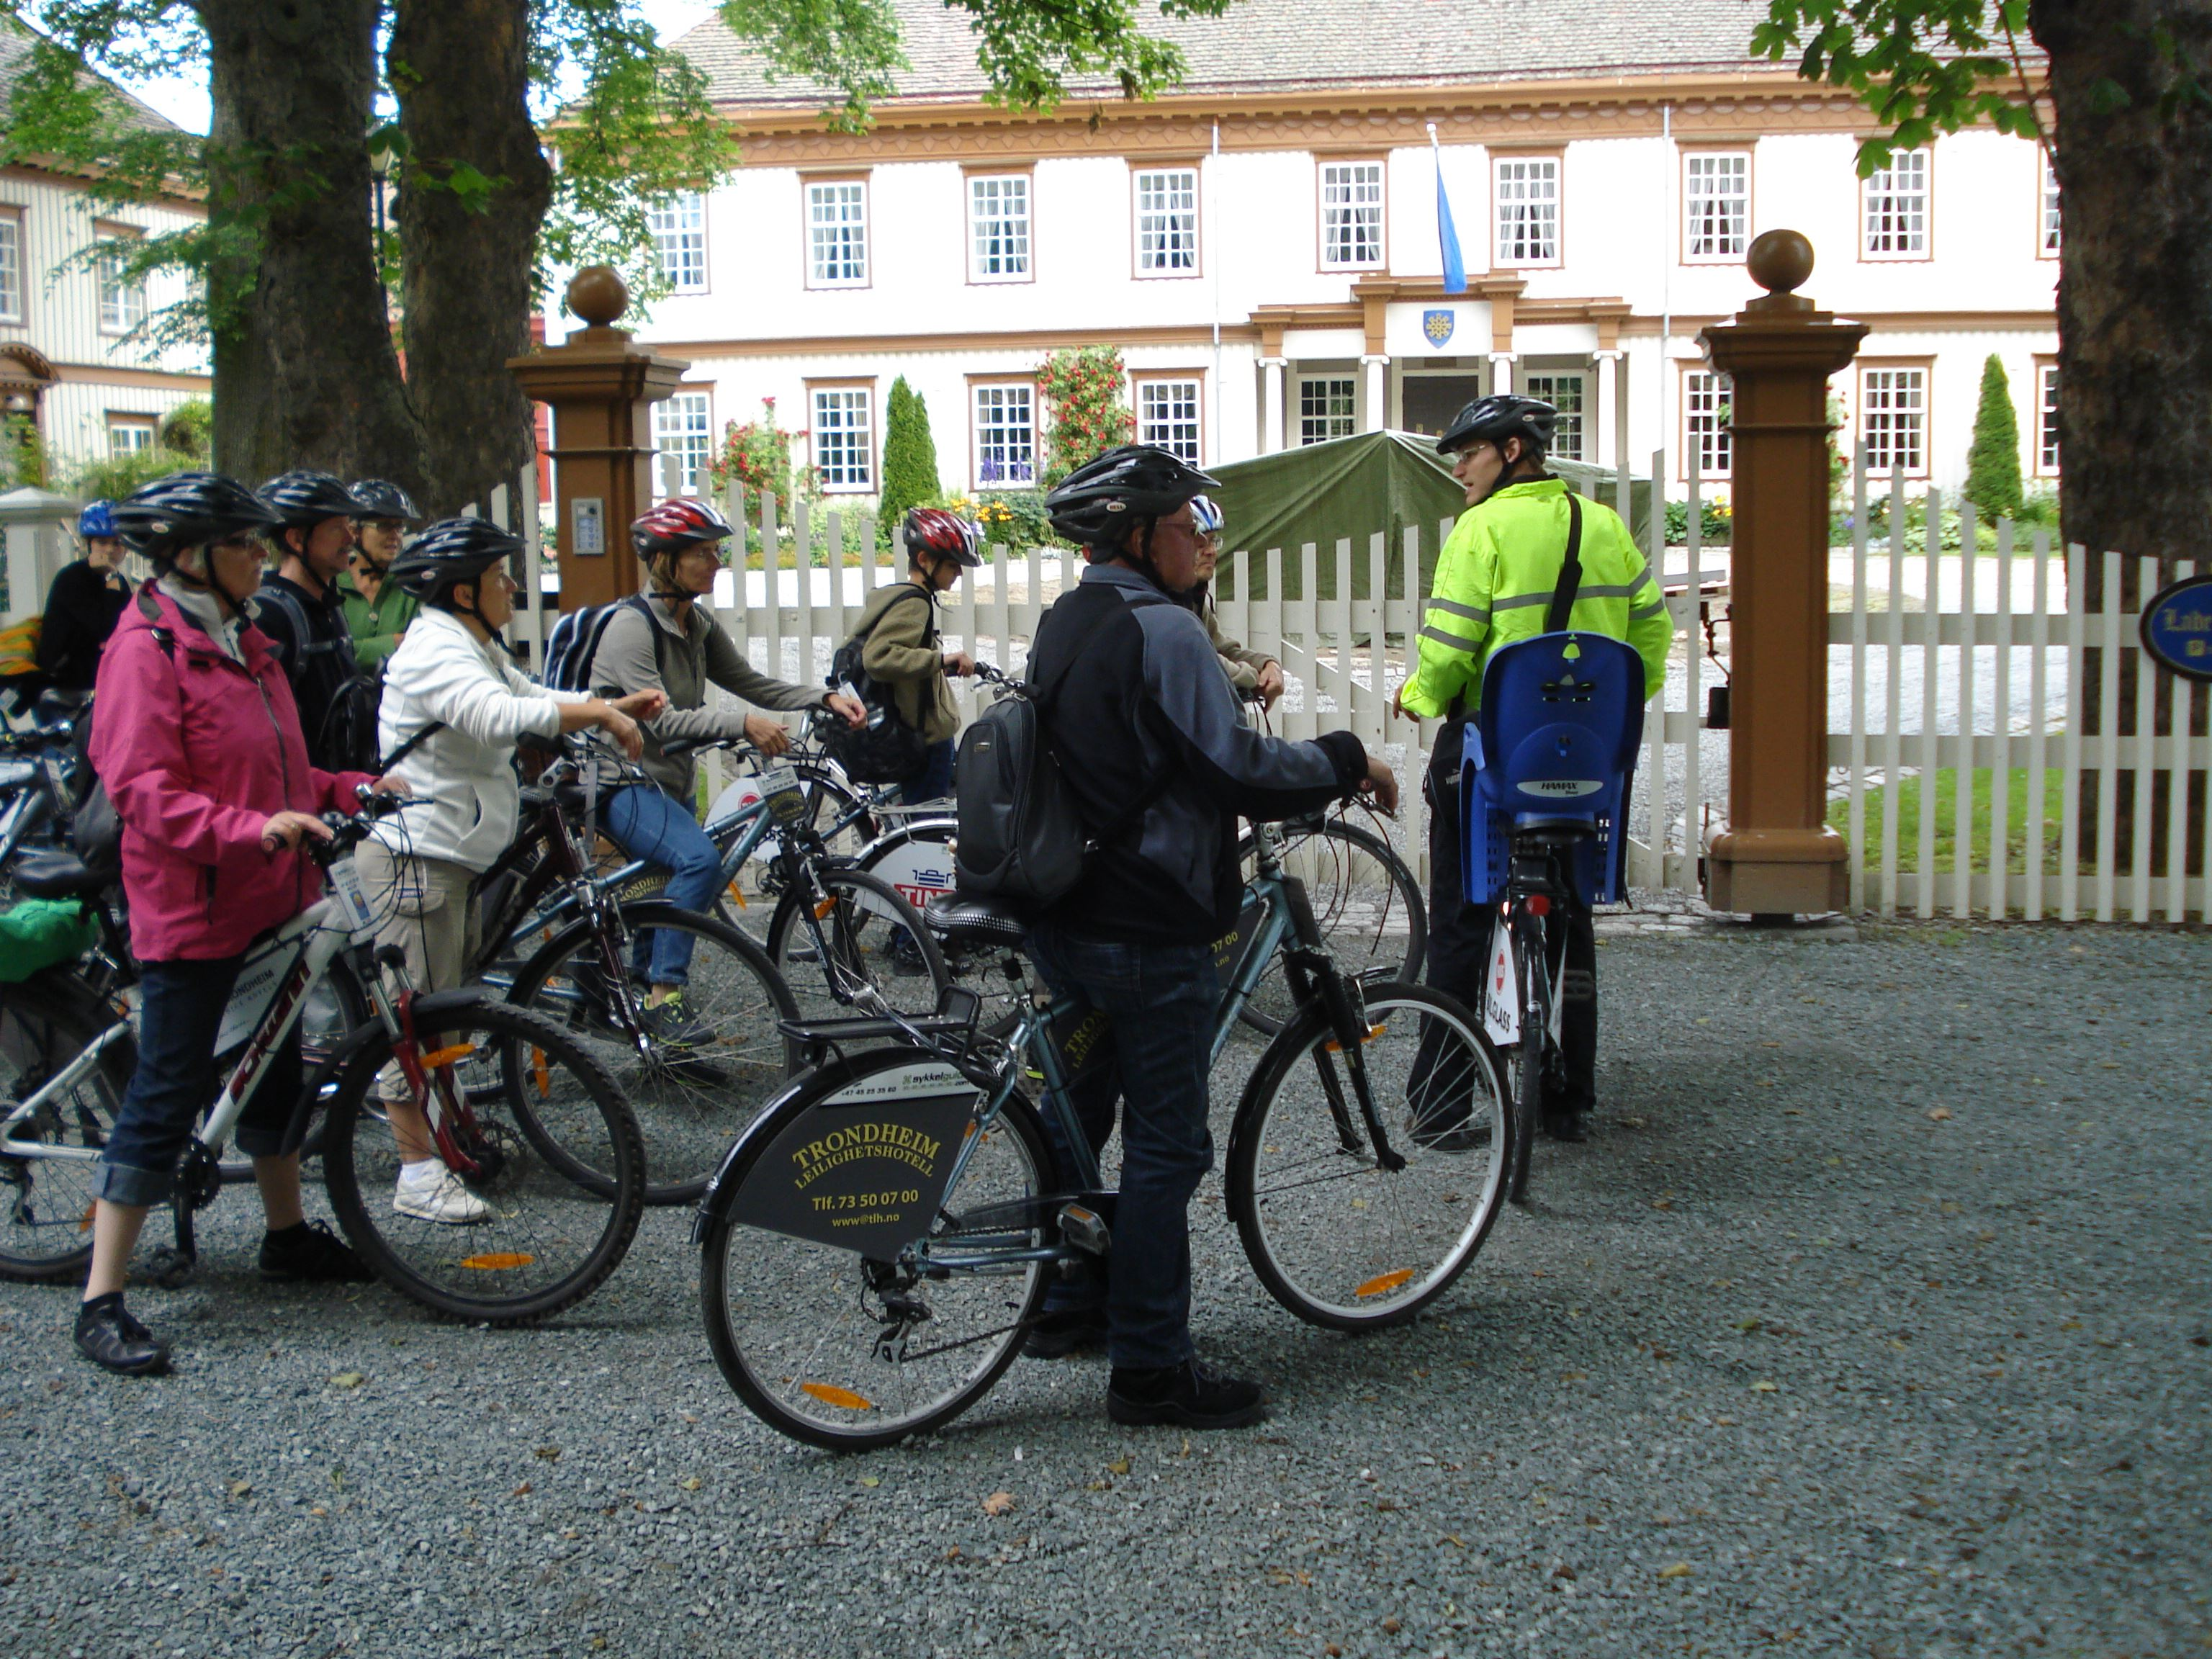 Sykkelguide.com, Guided bicycle tour in Trondheim